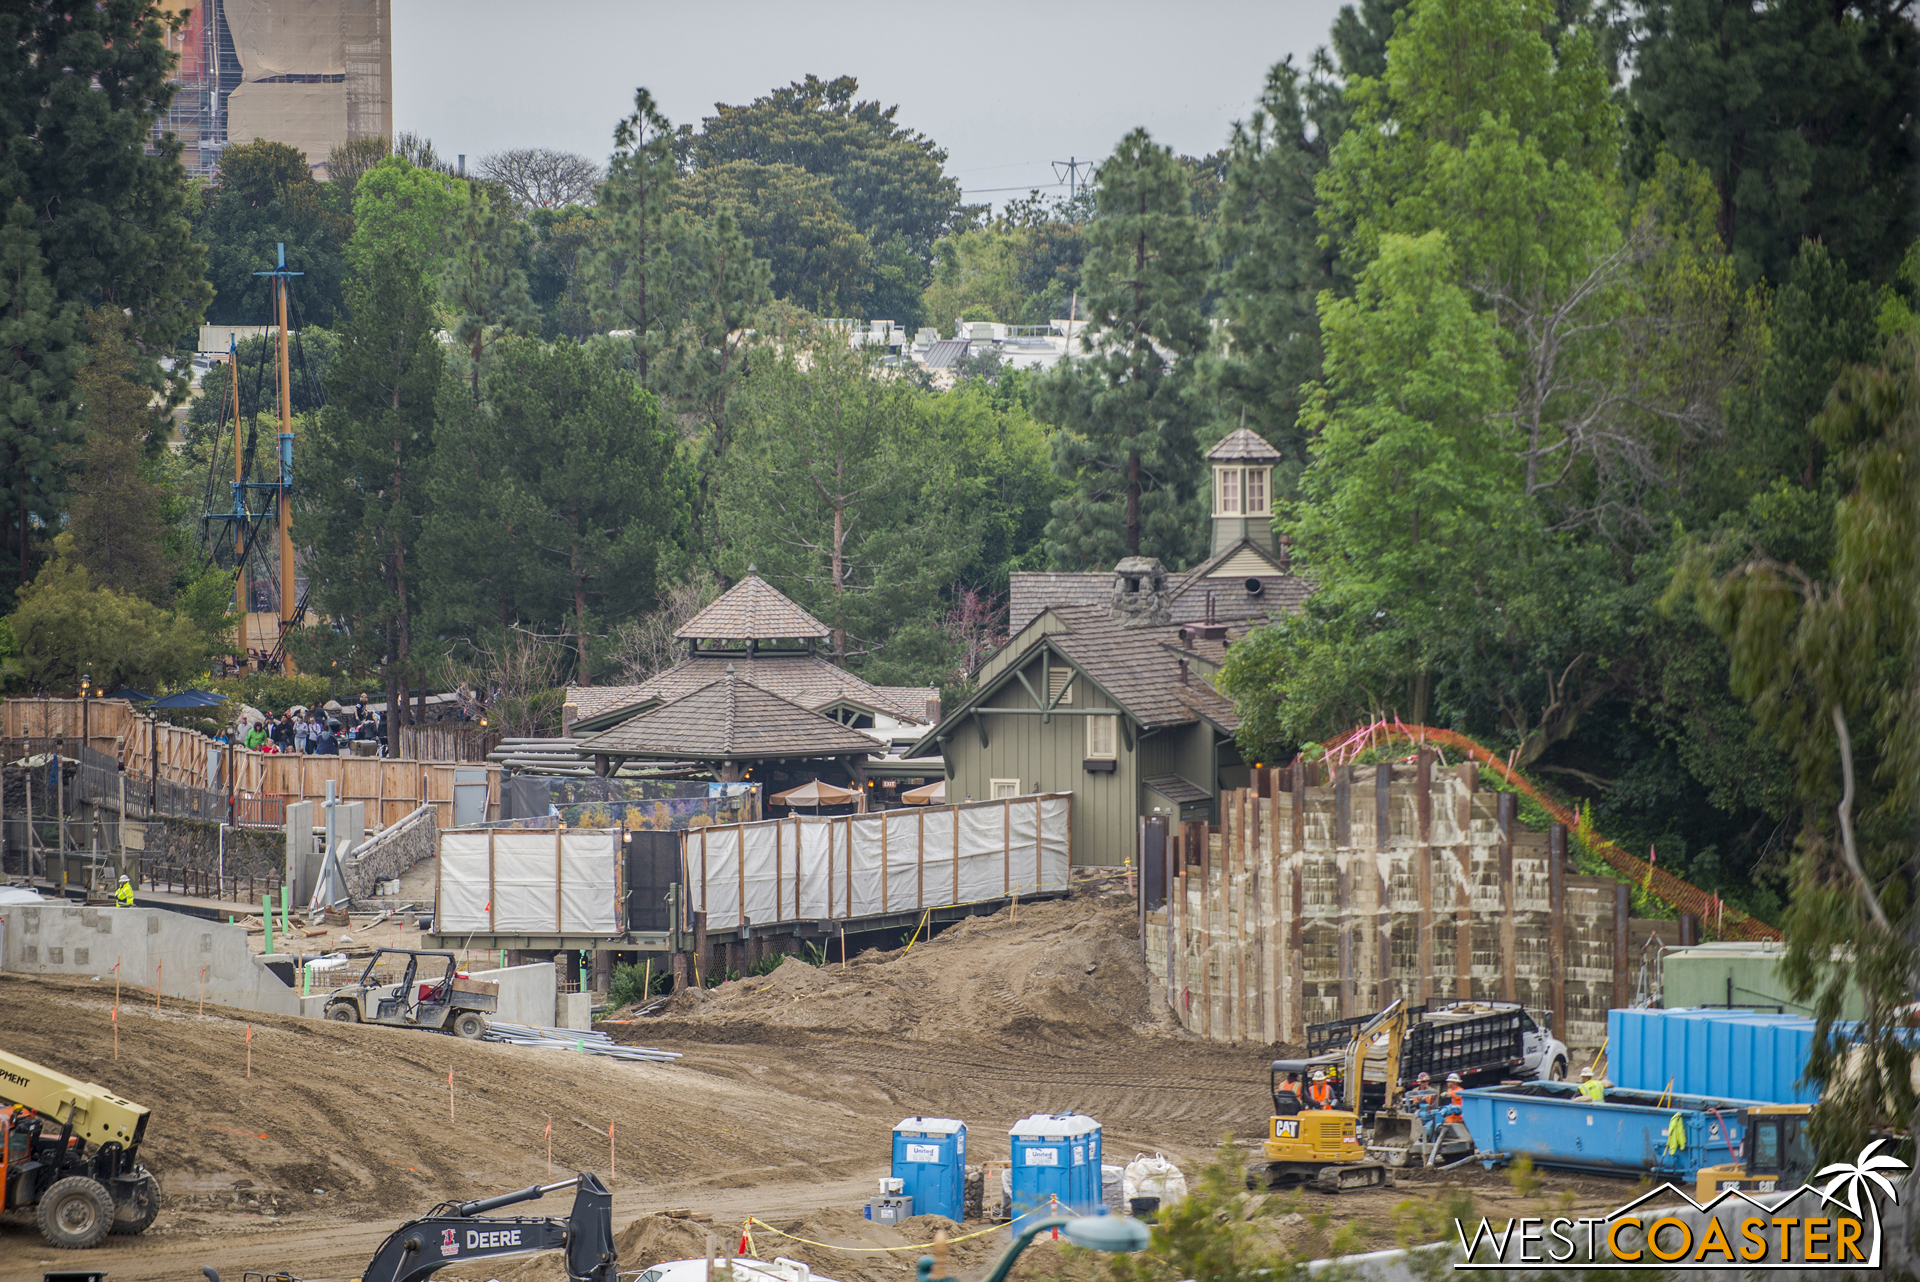 They'll have a few months to finish up the public-facing side of this area, since the Disneyland Railroad is scheduled to reopen in July.